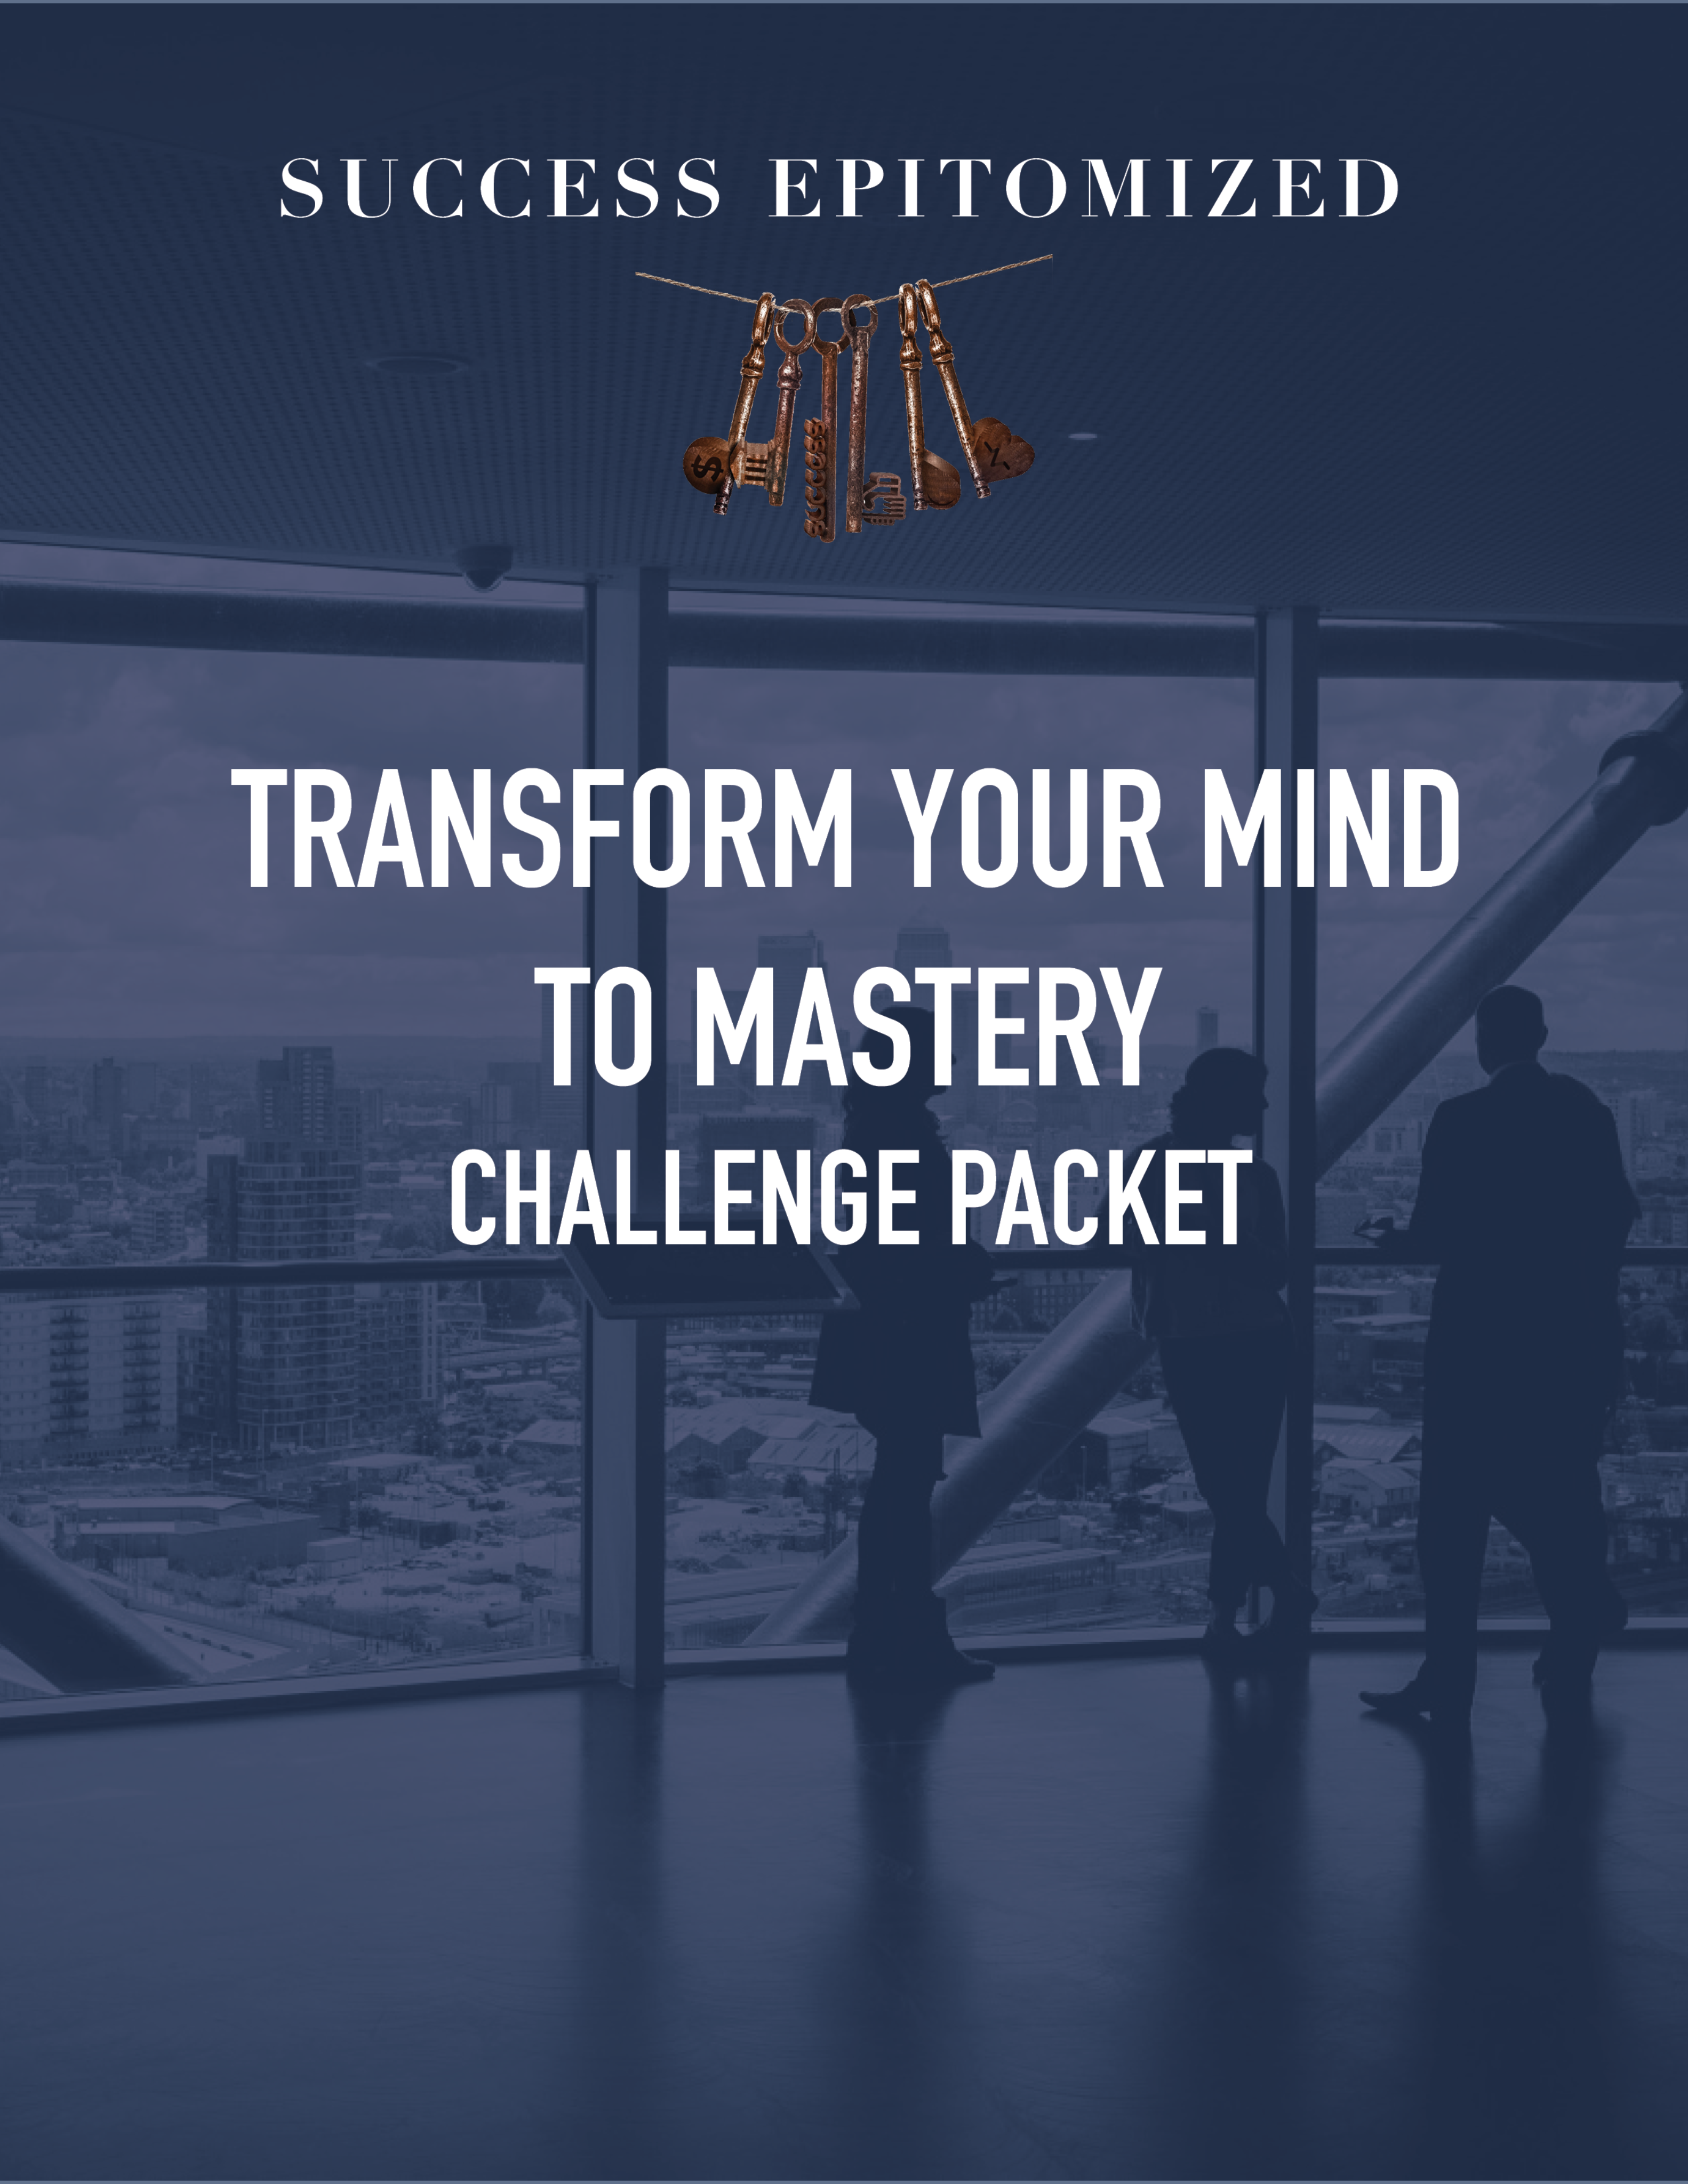 Transform Your Mind To Mastery Challenge Packet